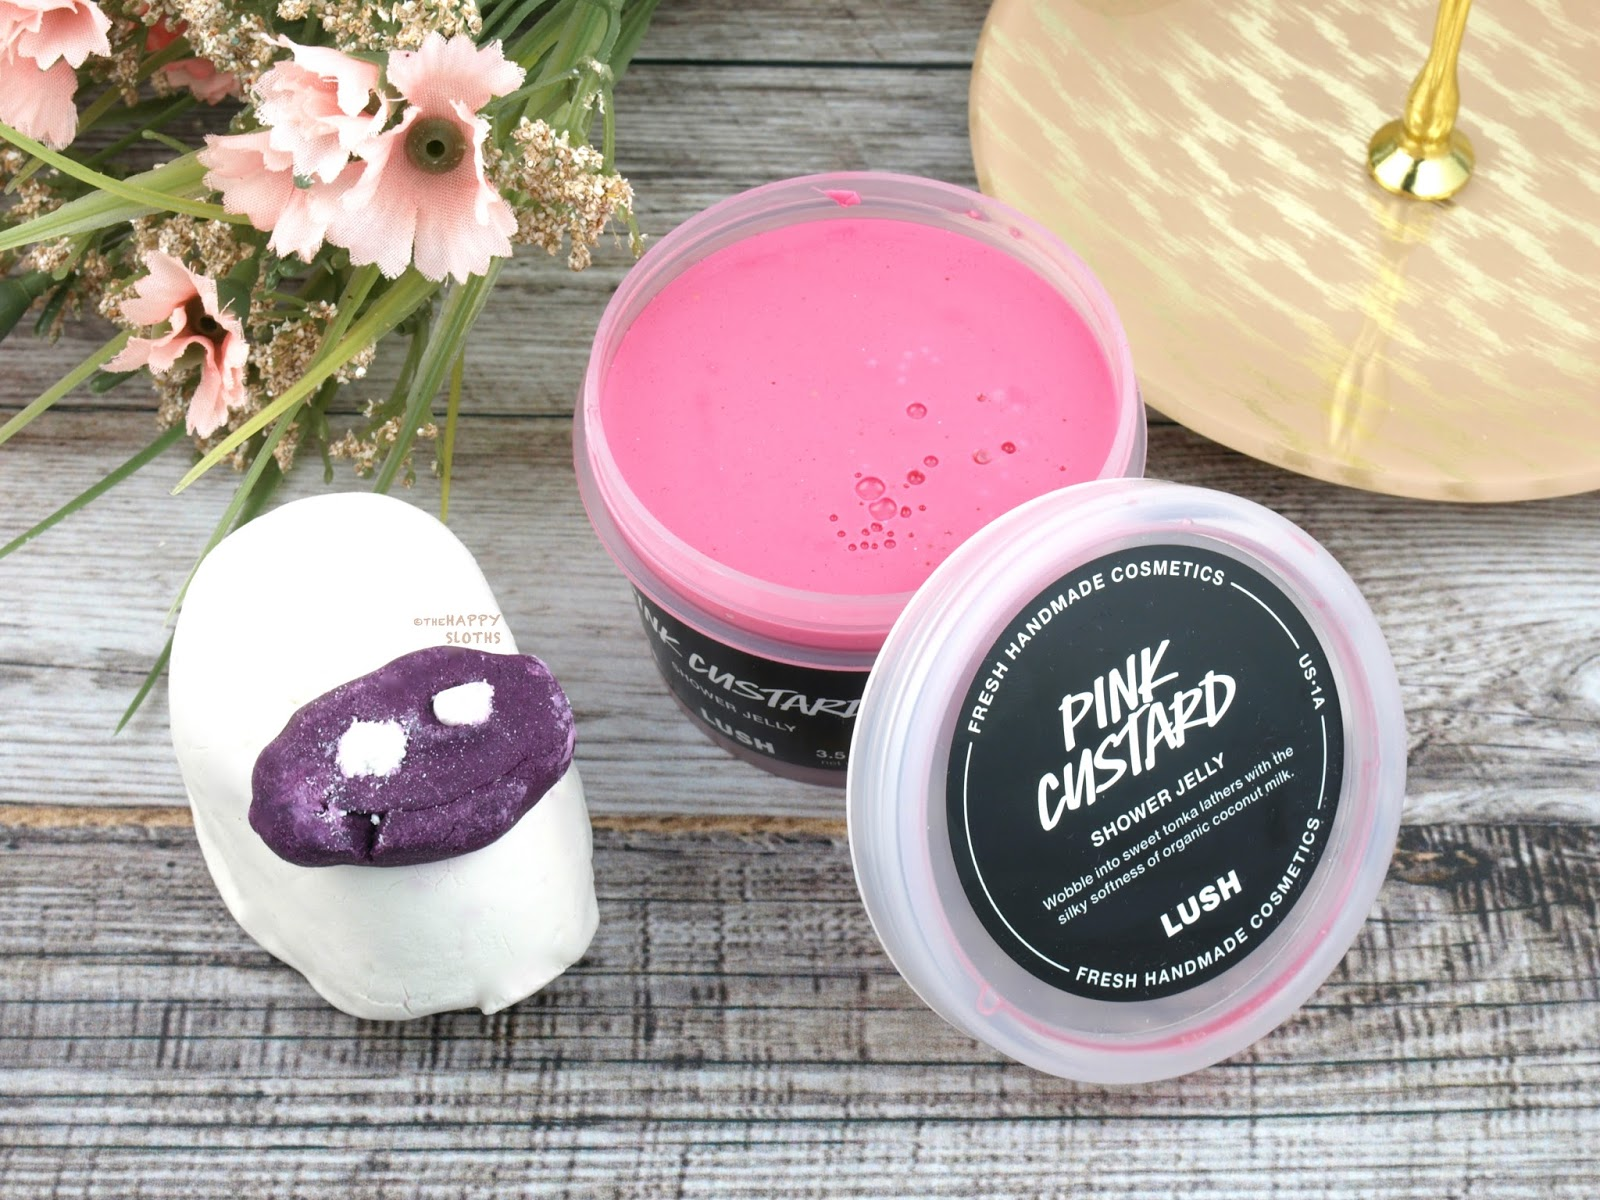 Lush Mother's Day 2017 Gift Guide | Baa Bar | Pink Custard Shower Jelly